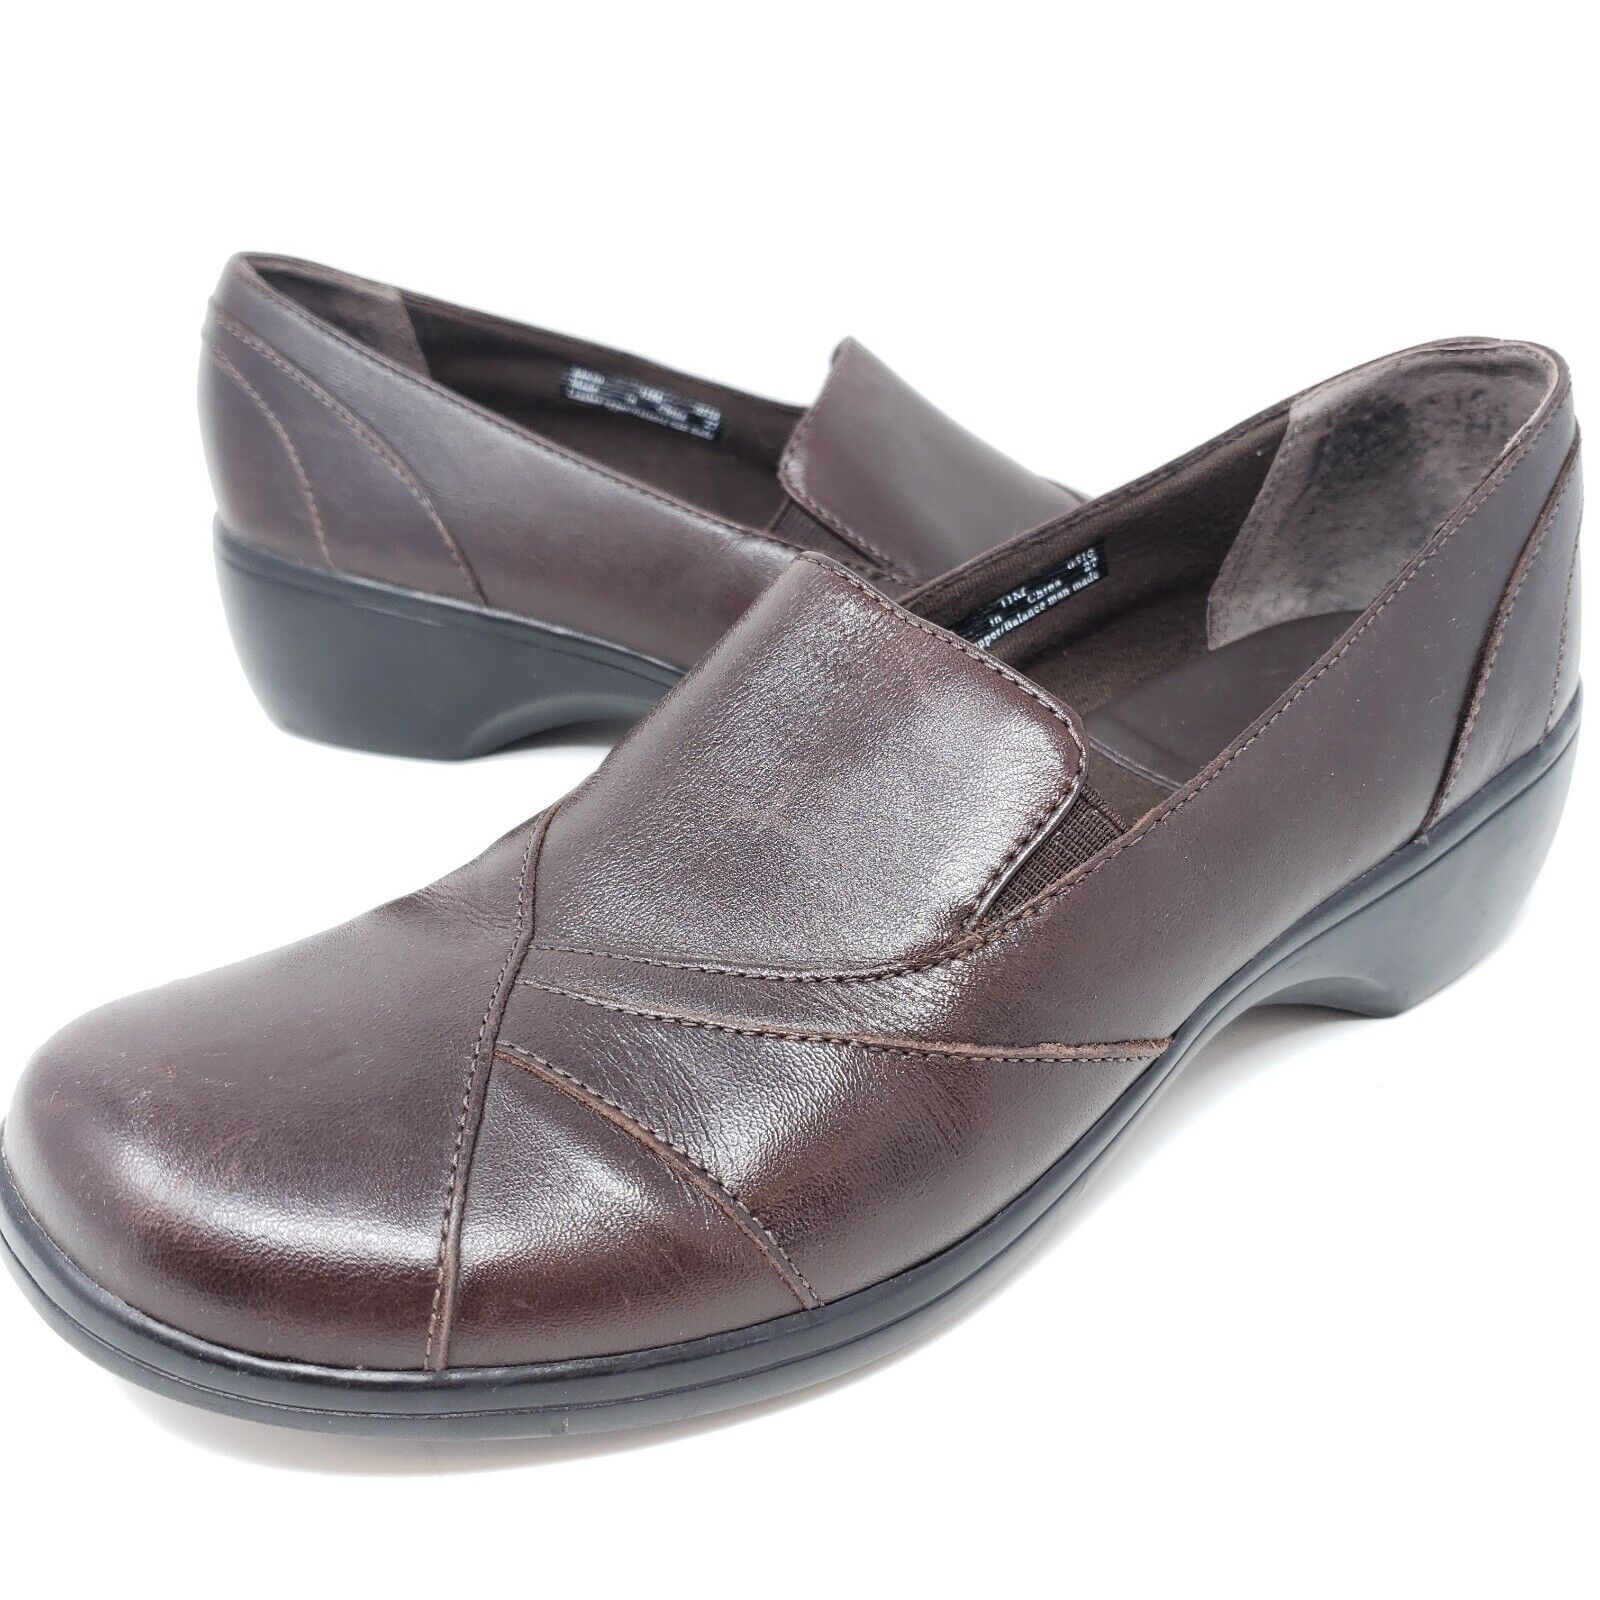 Clarks Women's Loafer Pumps Brown Leather Asymmetrical Slip On Comfort Shoes 11M